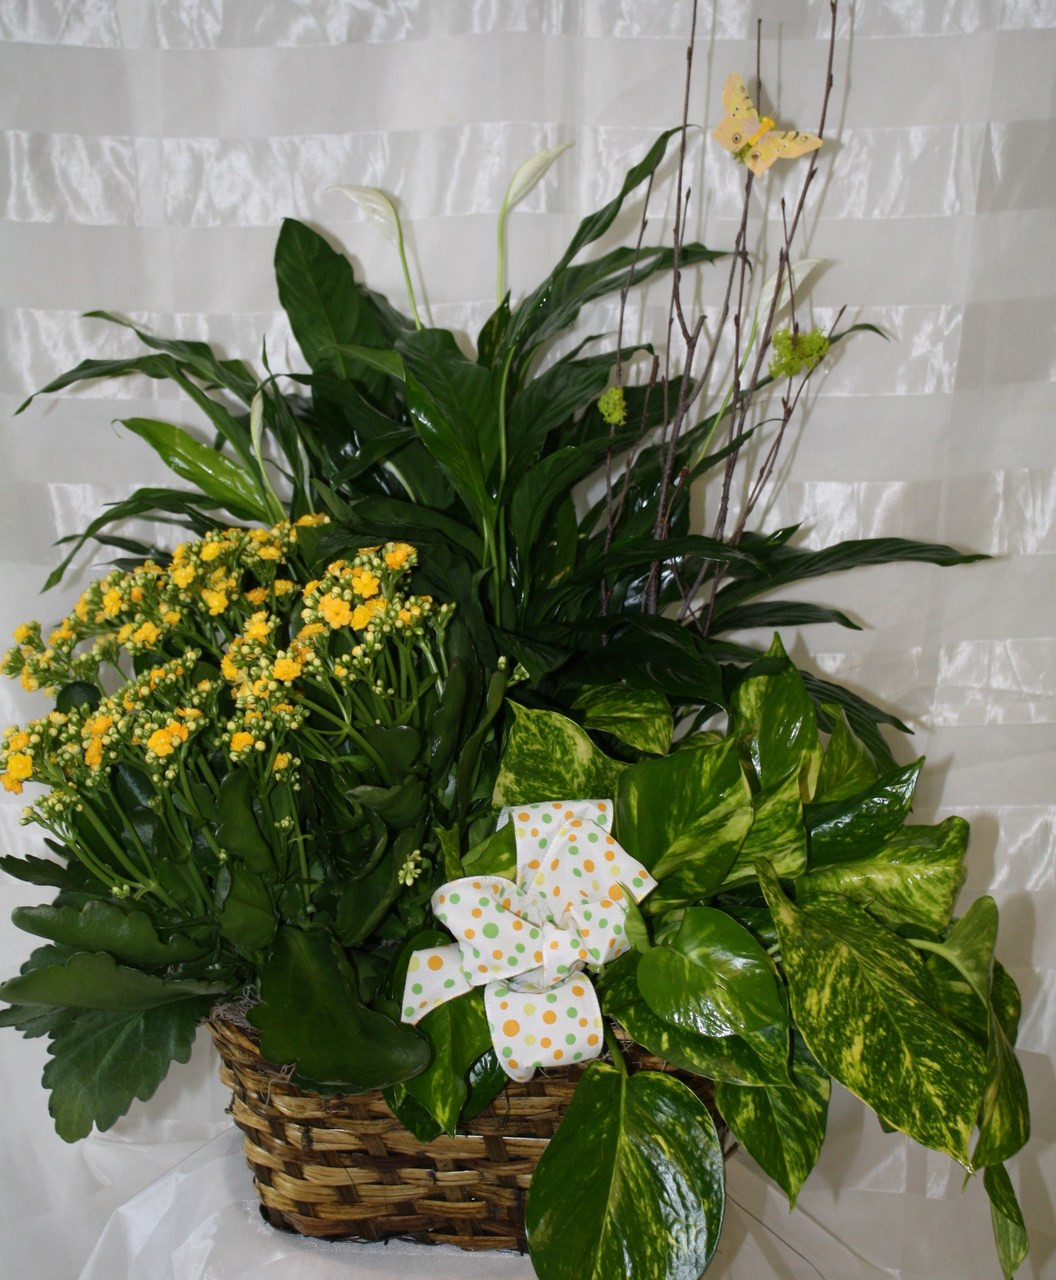 Green Plant And Blooming Plant Gardens Are Great Keepsakes